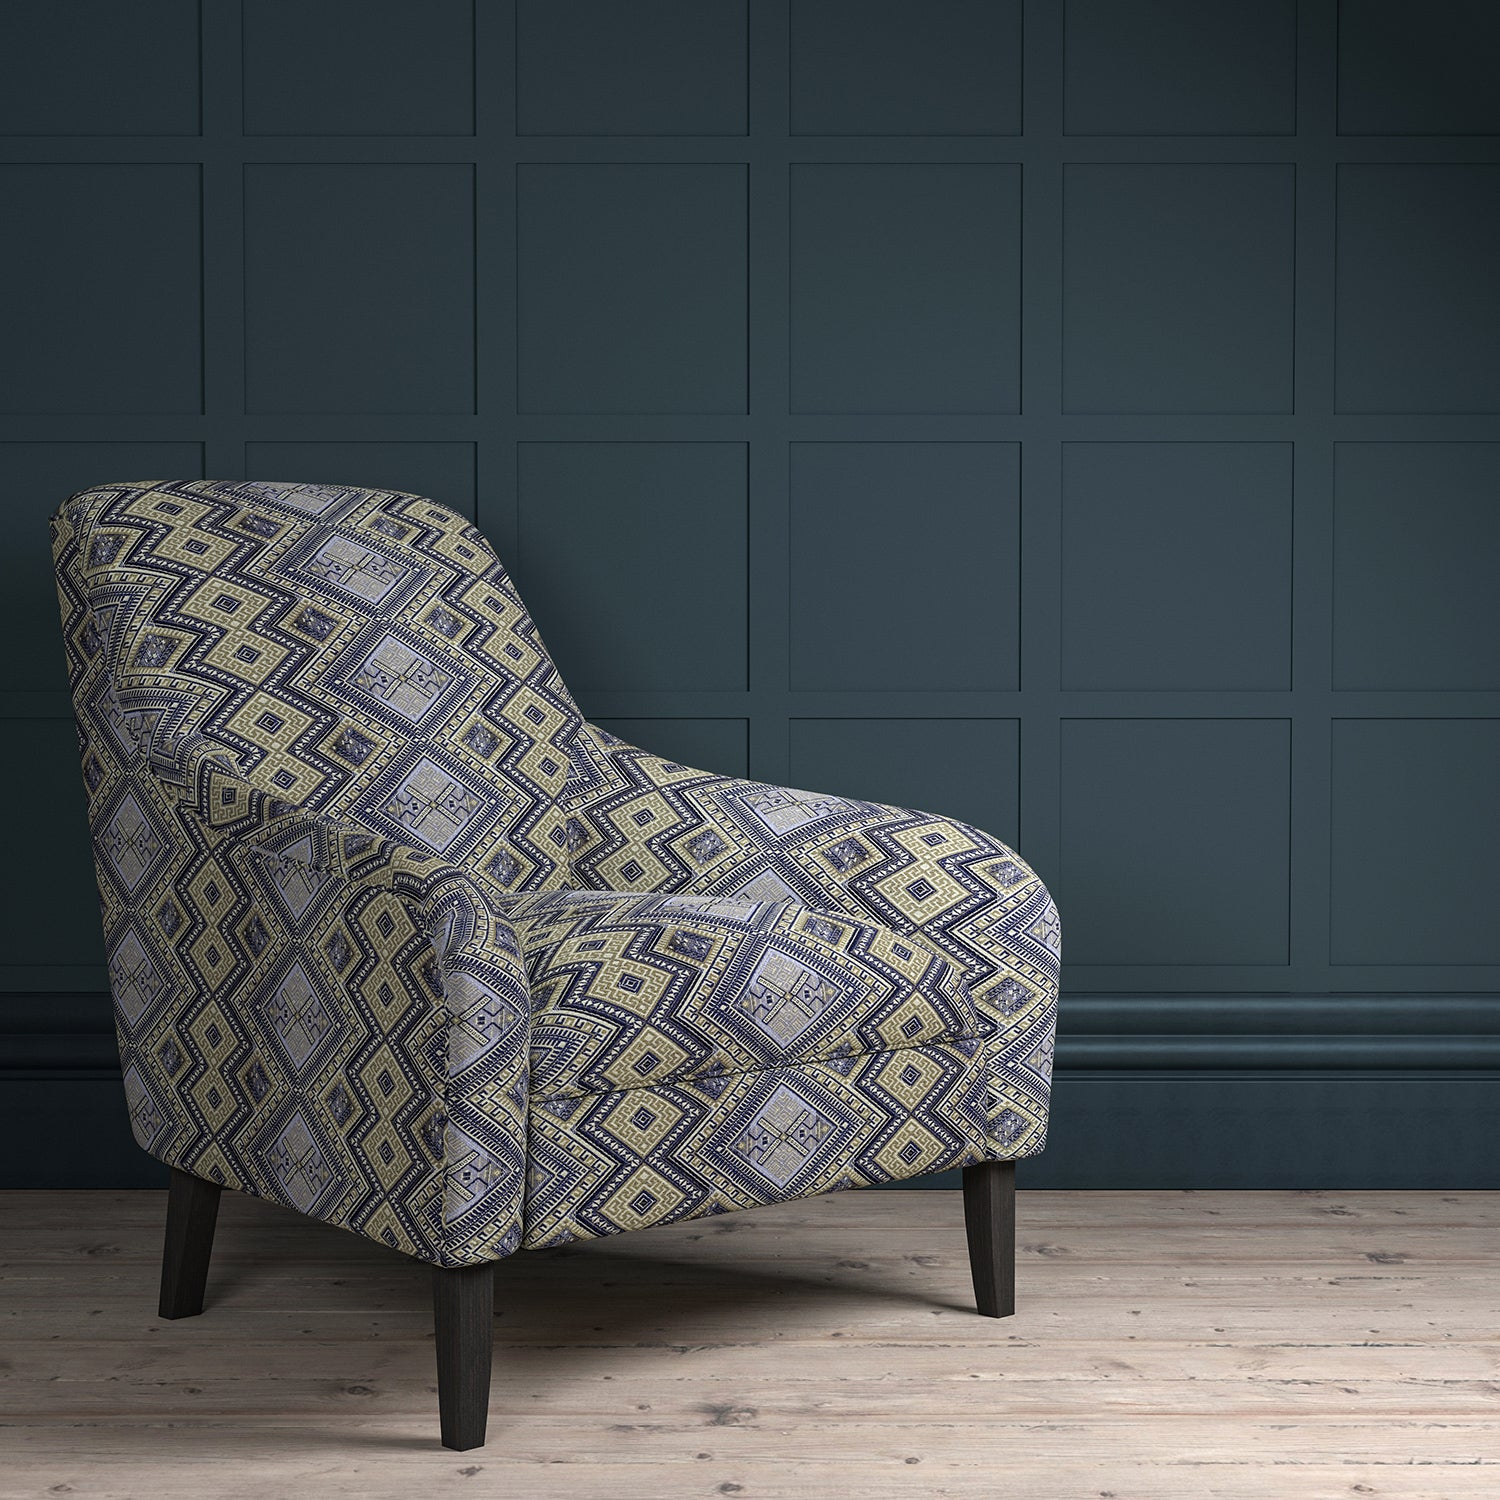 Chair upholstered in a blue coloured geometric upholstery fabric